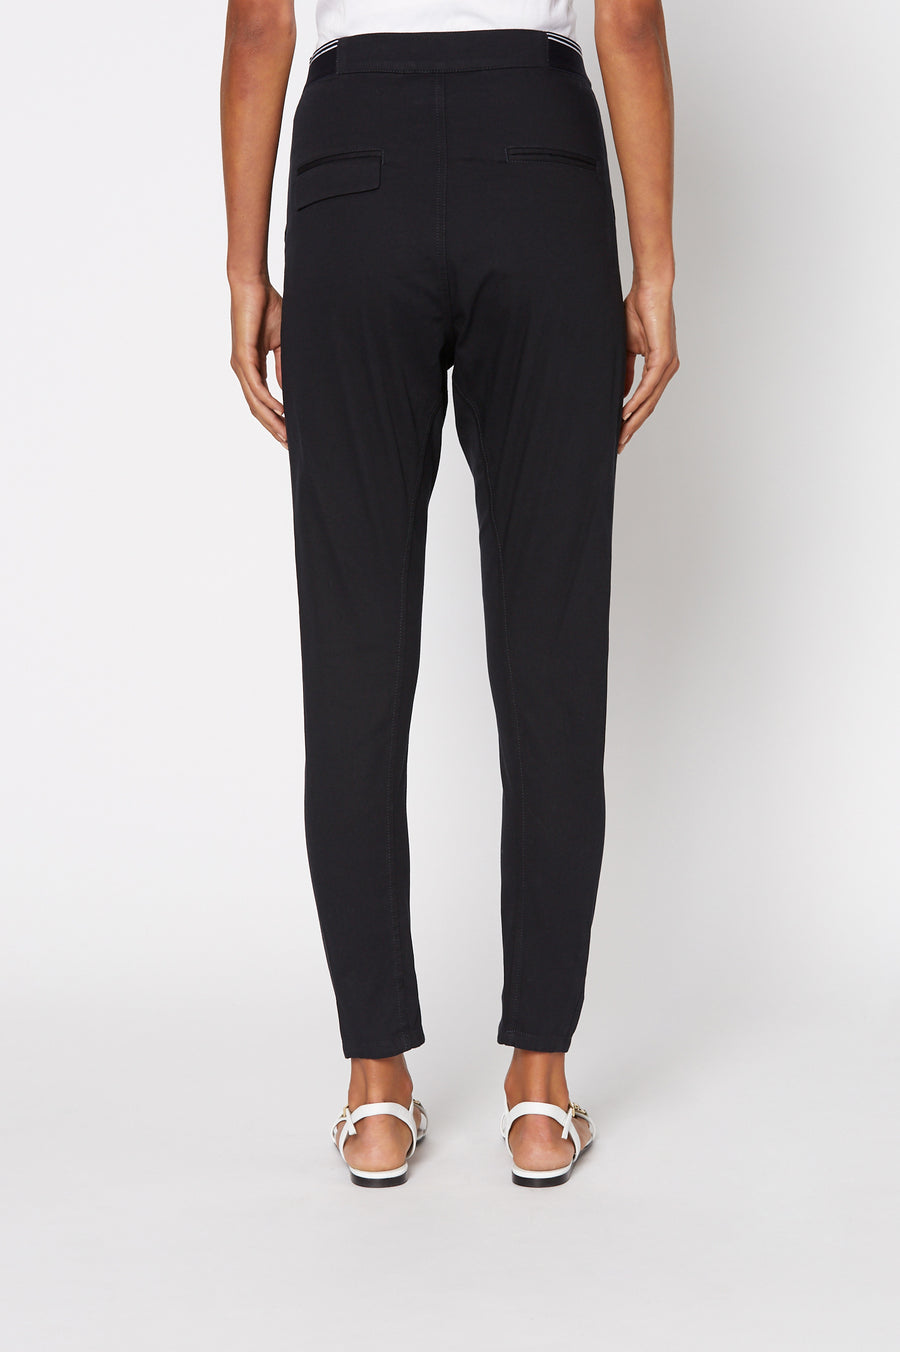 PATCH POCKET LOW RISE TROUSER, slim low rise, falls just above ankle, NAVY color